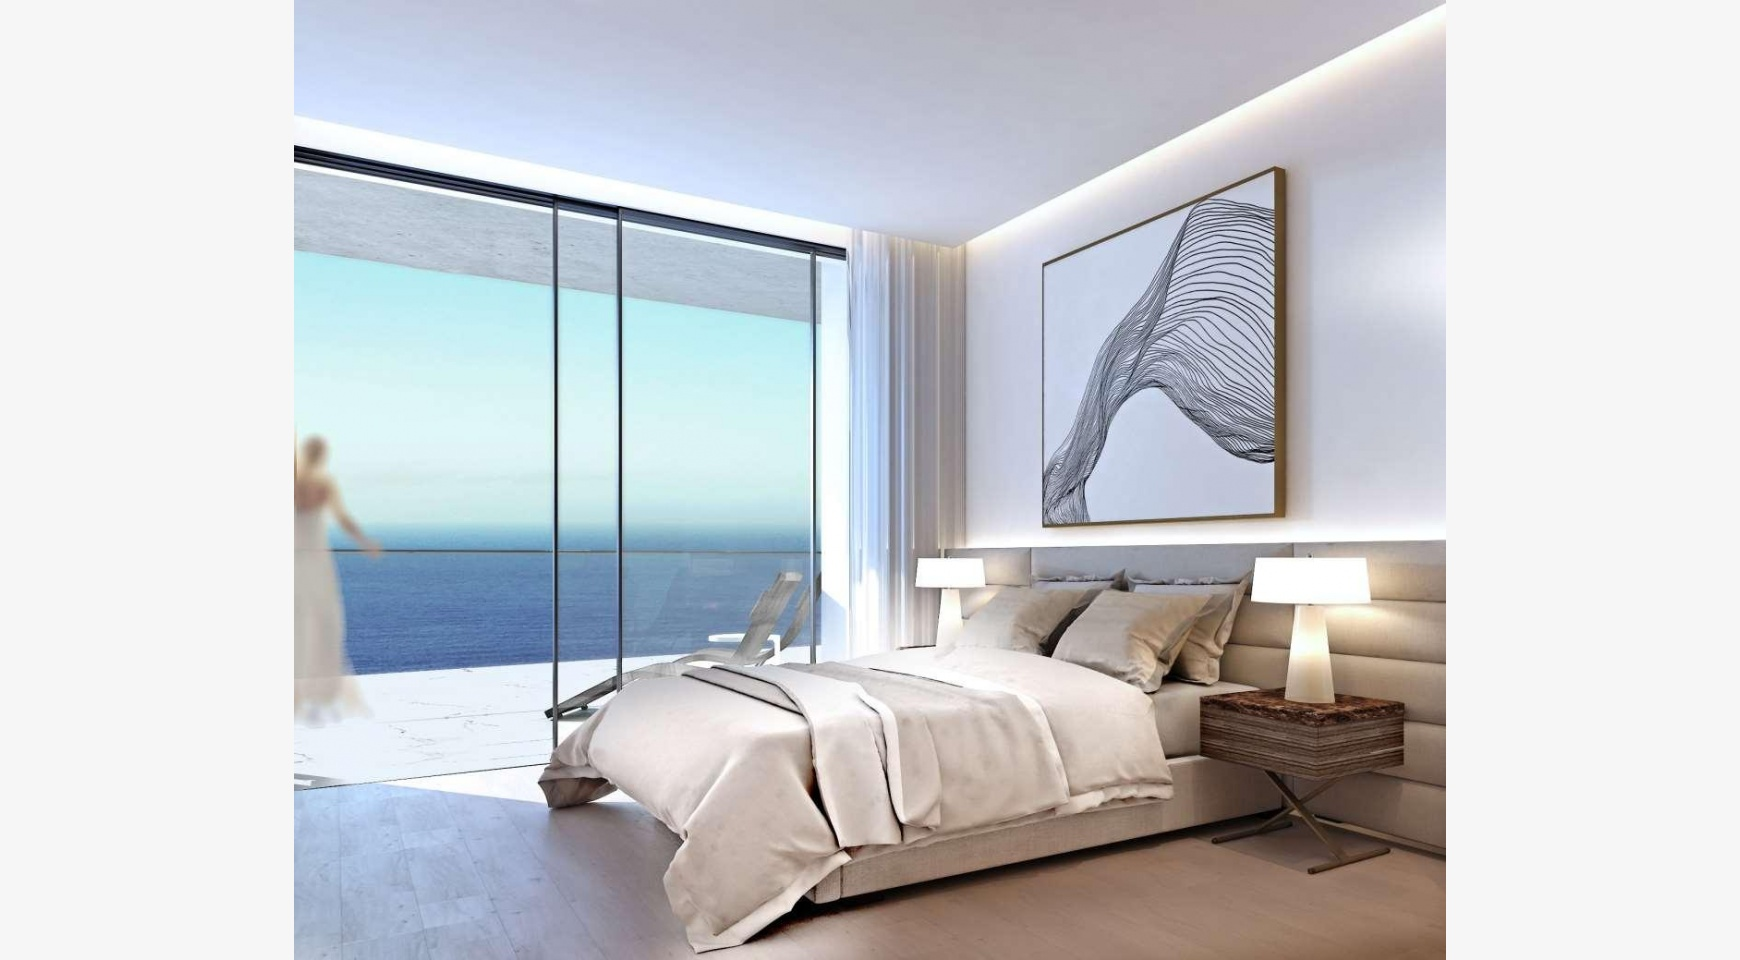 Luxury 3 Bedroom Apartment in a New Project by the Sea in the City Centre - 8